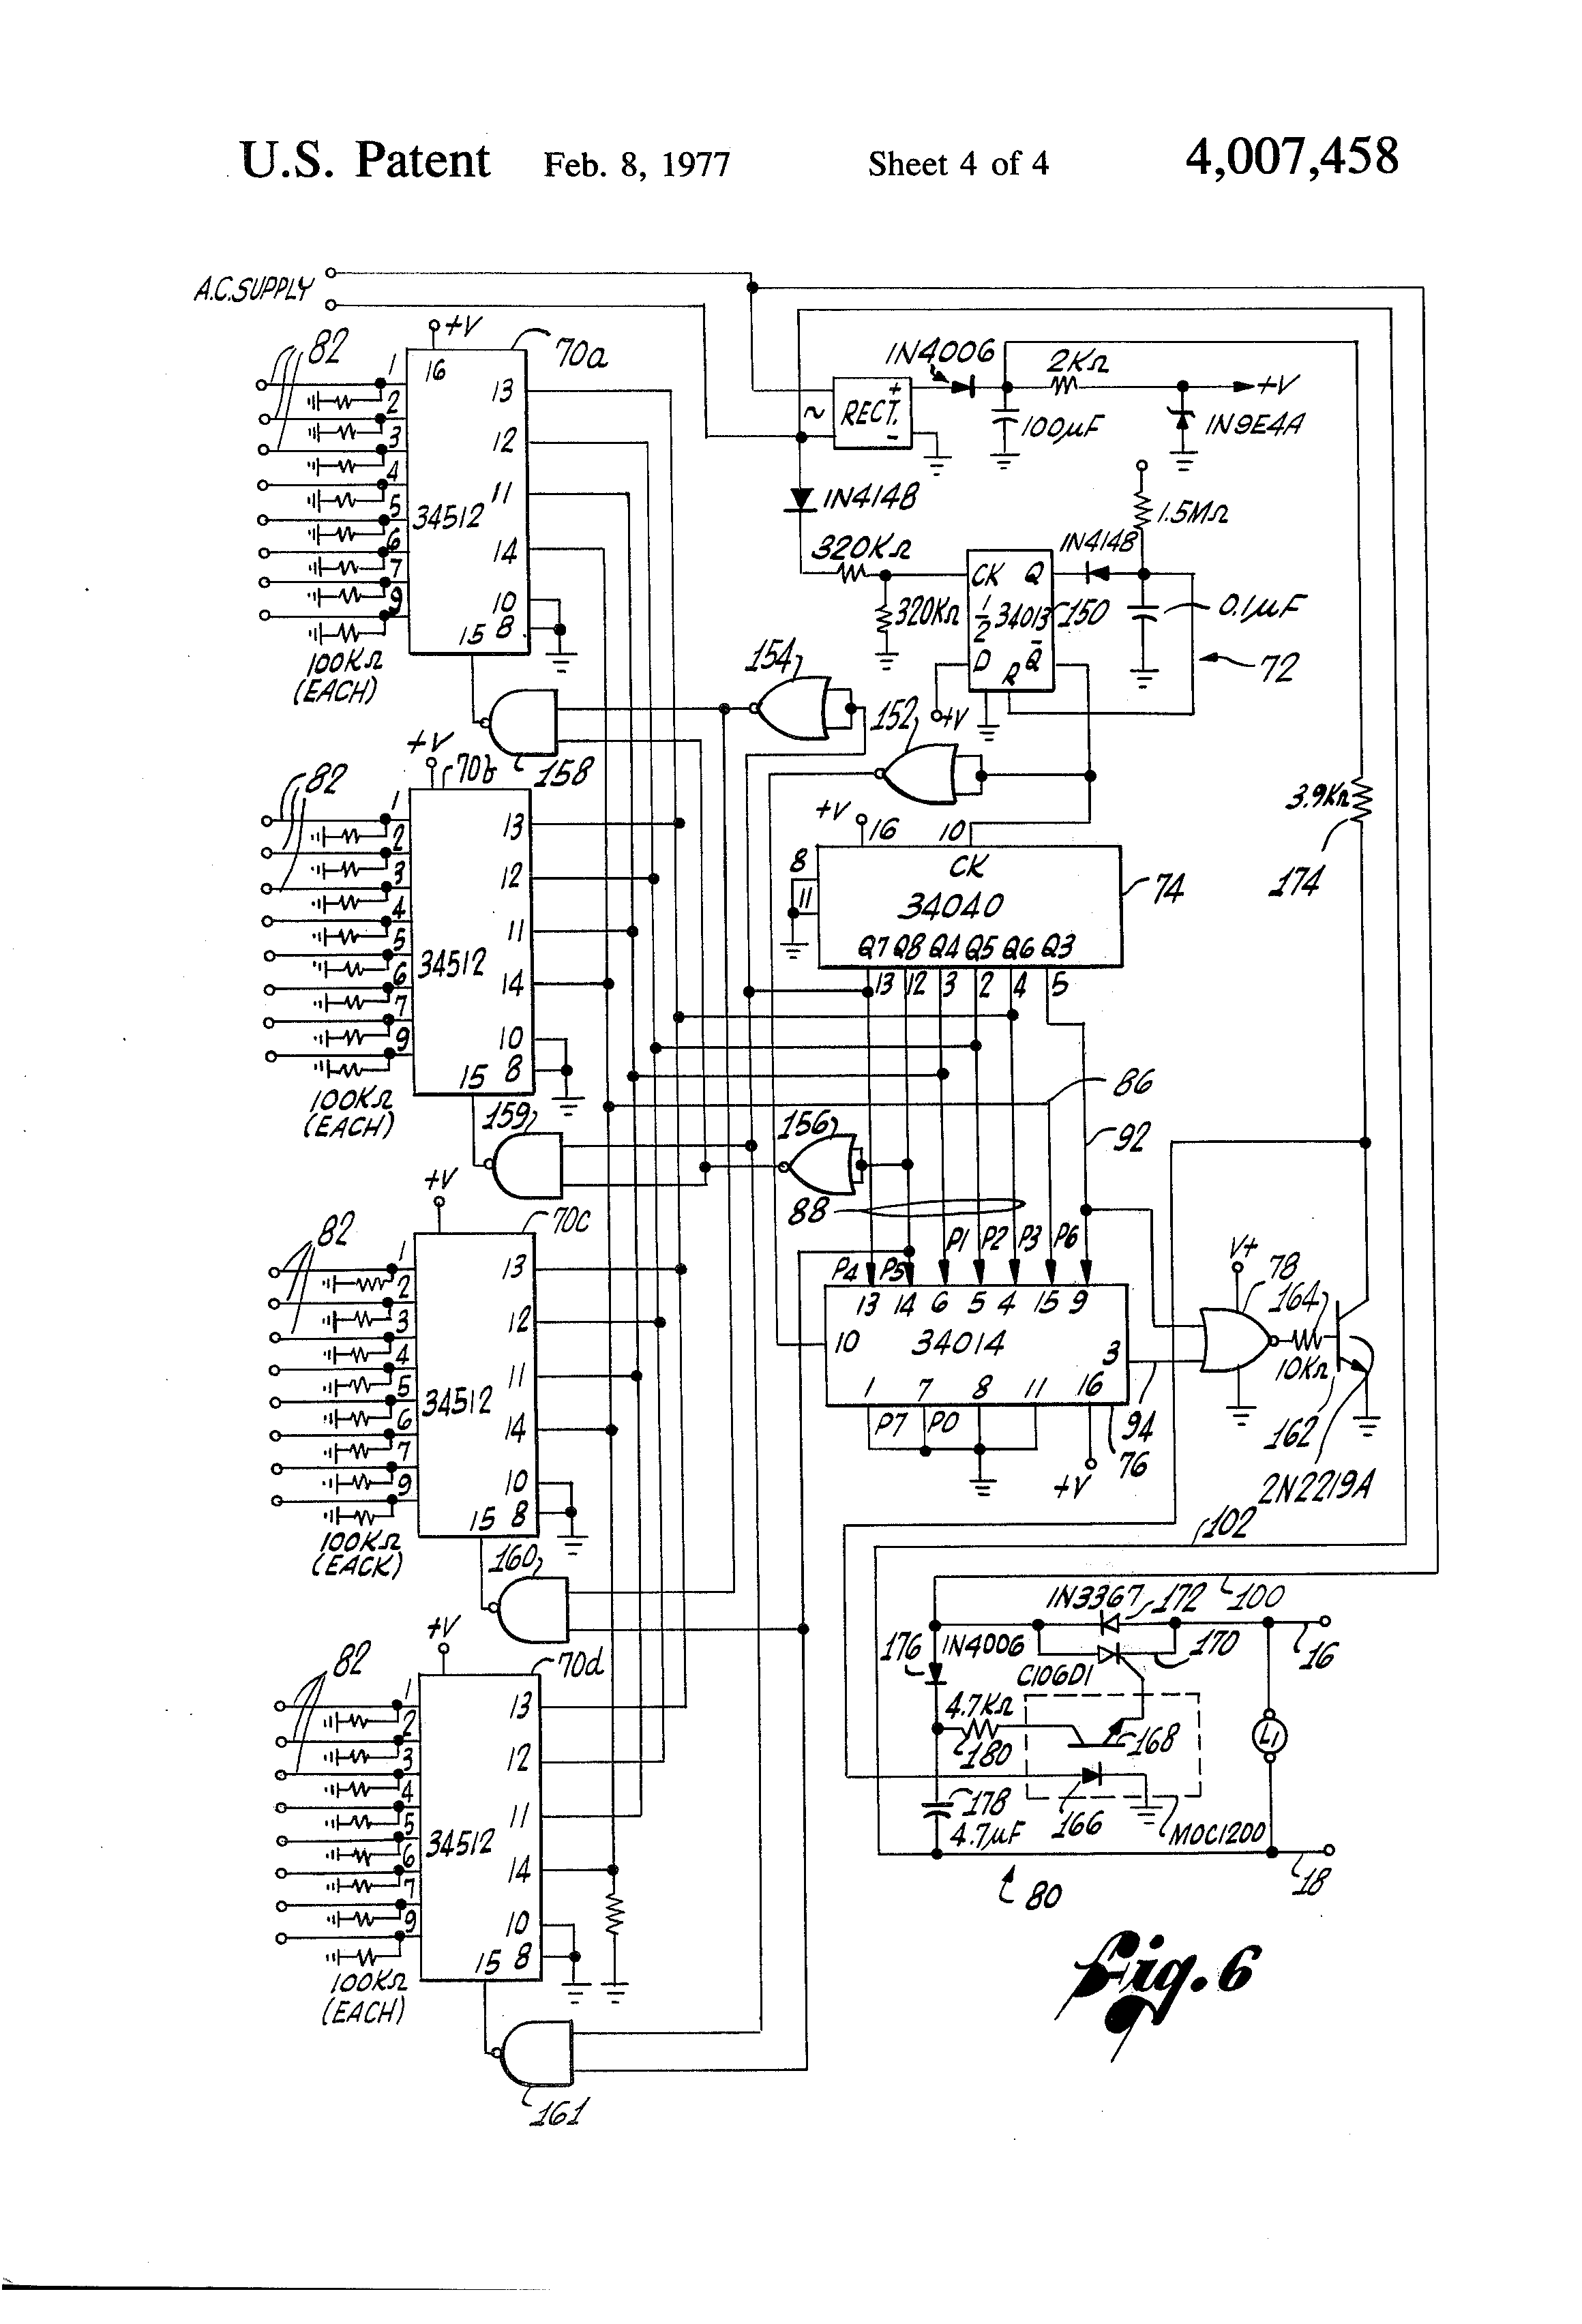 Toro Sprinkler System Wiring Diagram - efcaviation.com on toro sprinkler tools, toro sprinkler controls, toro sprinkler body, toro sprinkler accessories, electric water pump wiring diagram, toro sprinkler system, toro sprinkler transformer, toro sprinkler screw, toro sprinkler parts, rv water pump wiring diagram, toro sprinkler adjustment, irrigation system wiring diagram,